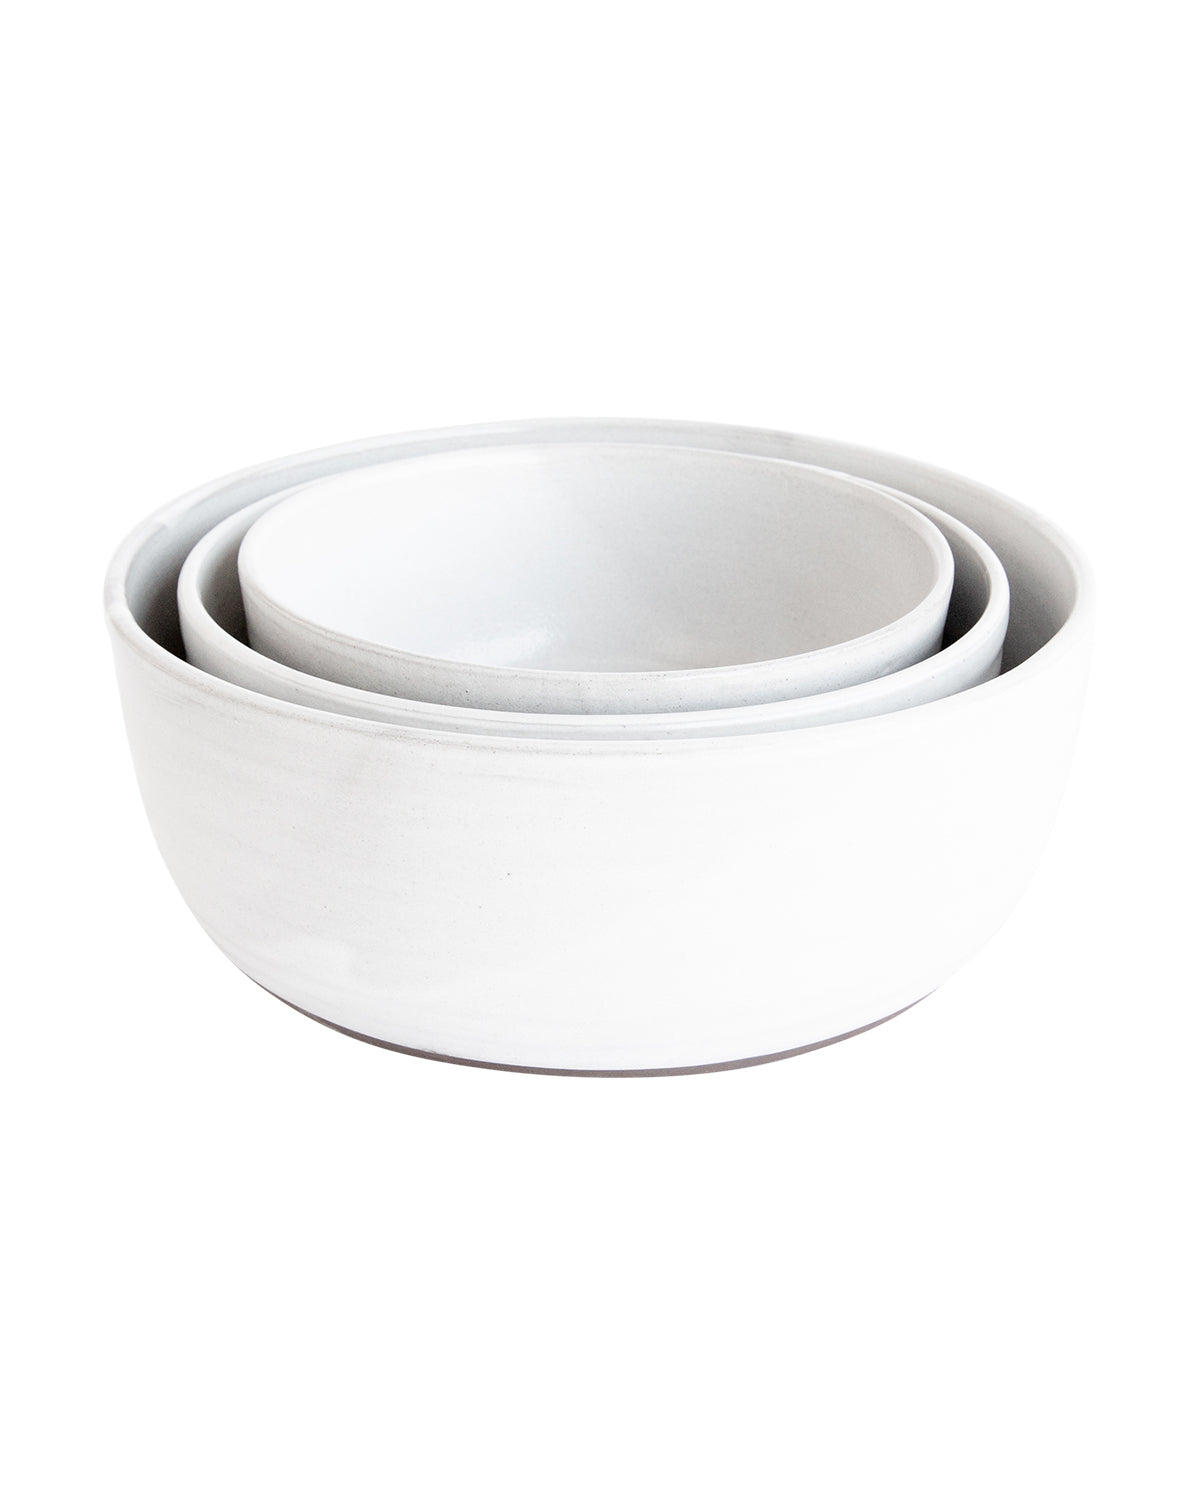 White & Espresso Serving Bowls